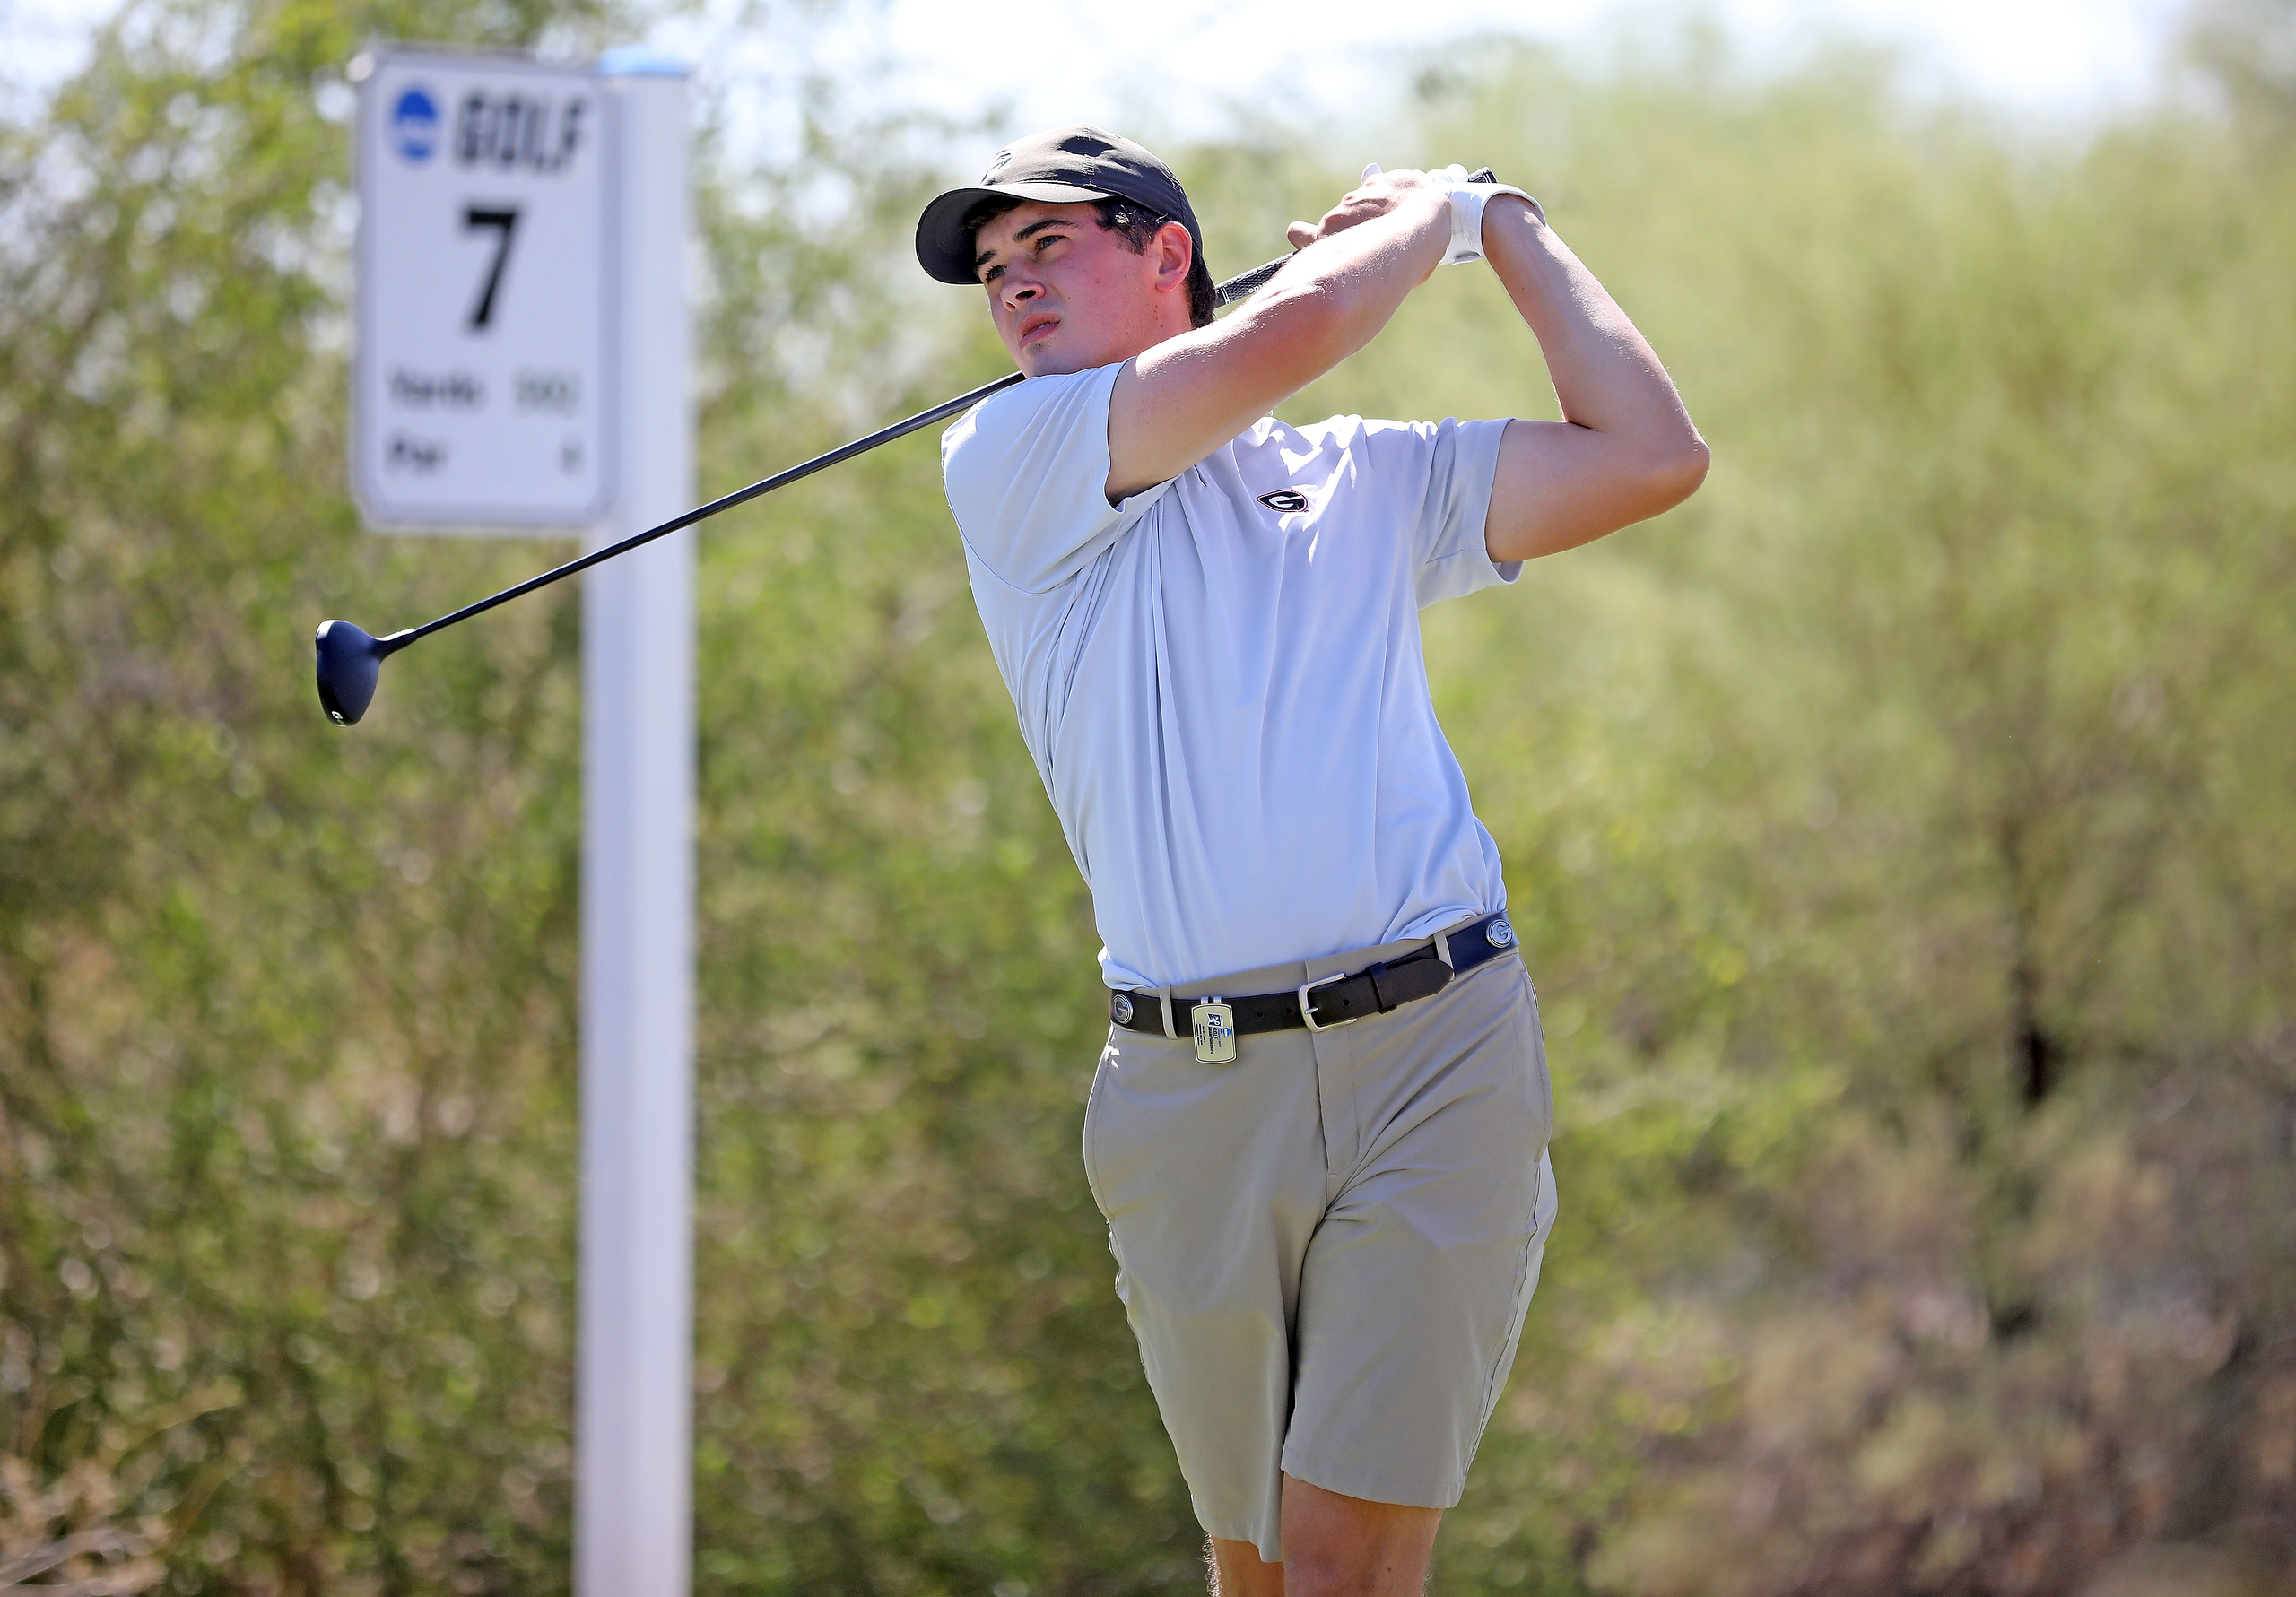 Georgia's Davis Thompson during the first round of the NCAA Championships at Grayhawk Golf Club in Scottsdale, Ariz., on Friday, May 28, 2021. (Photo by Steven Colquitt)